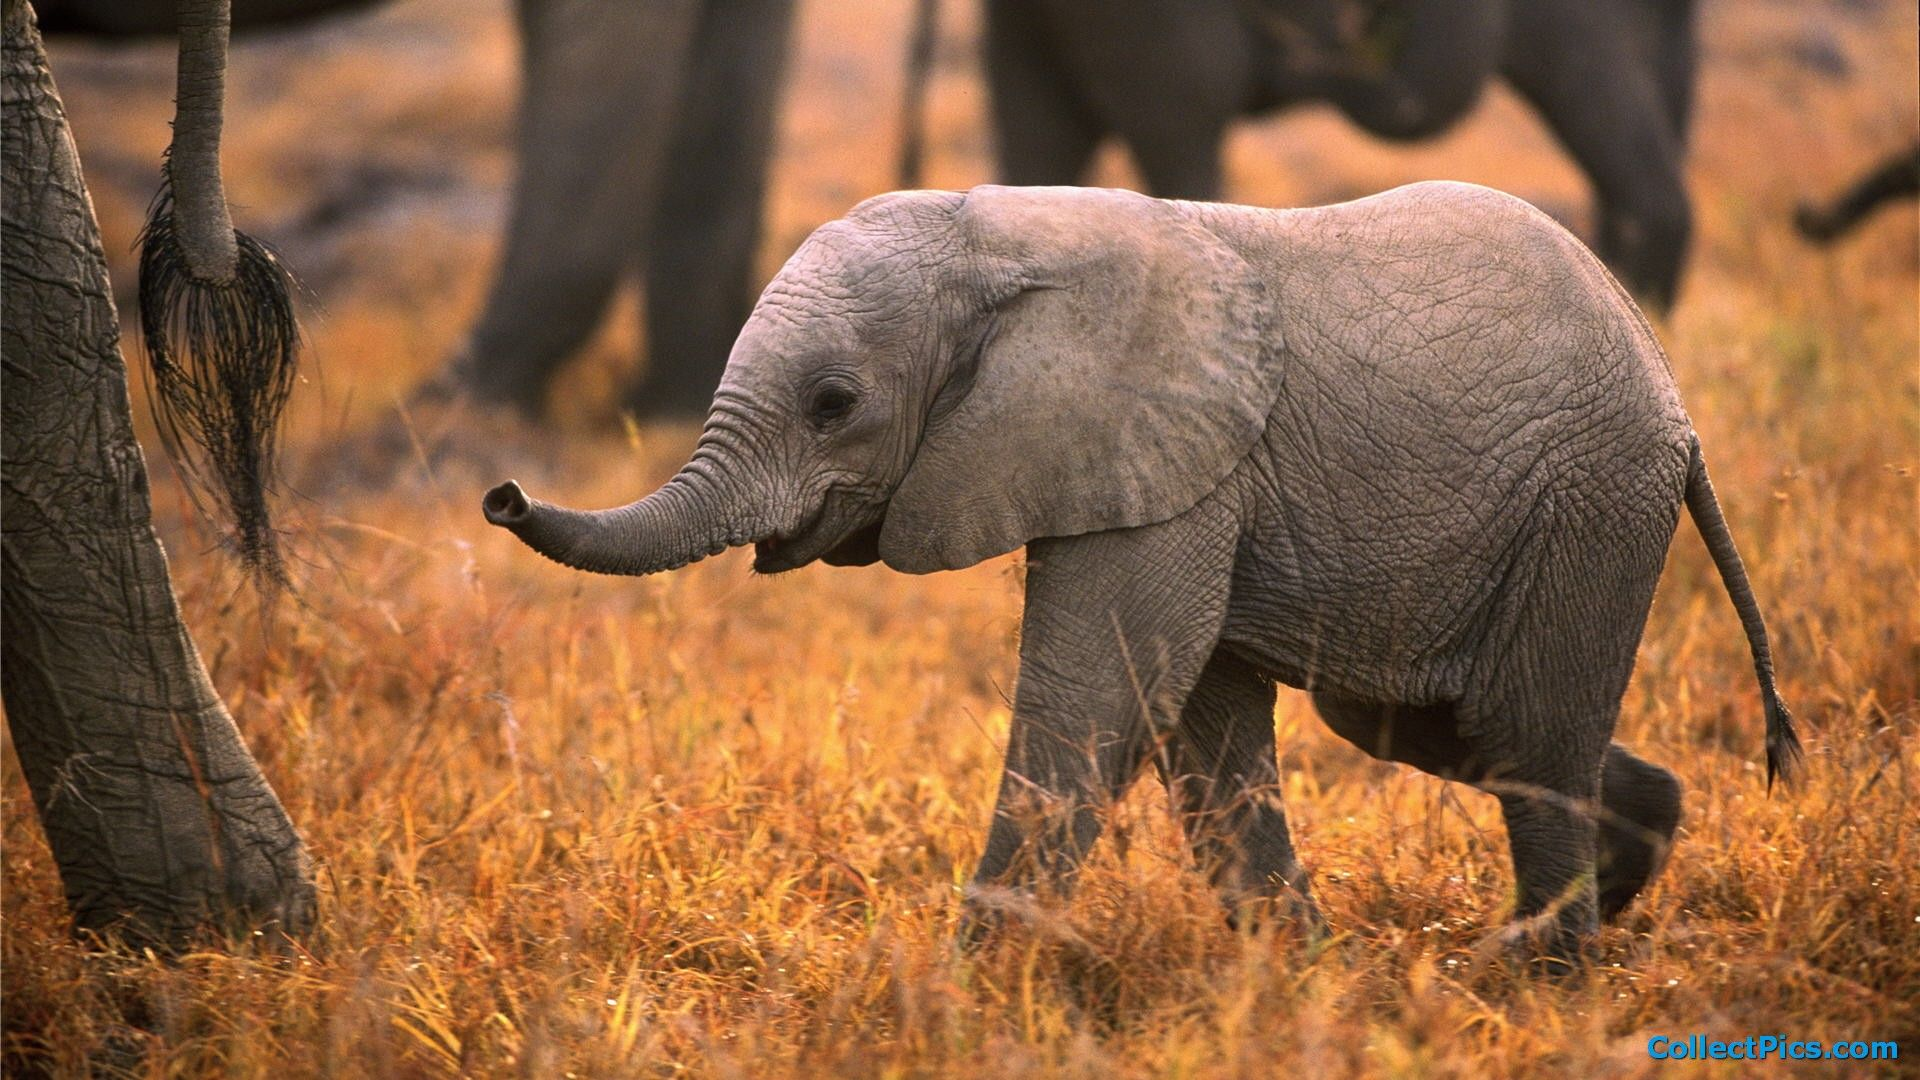 Baby Elephant Cute All Picture Elephant 2017 Baby